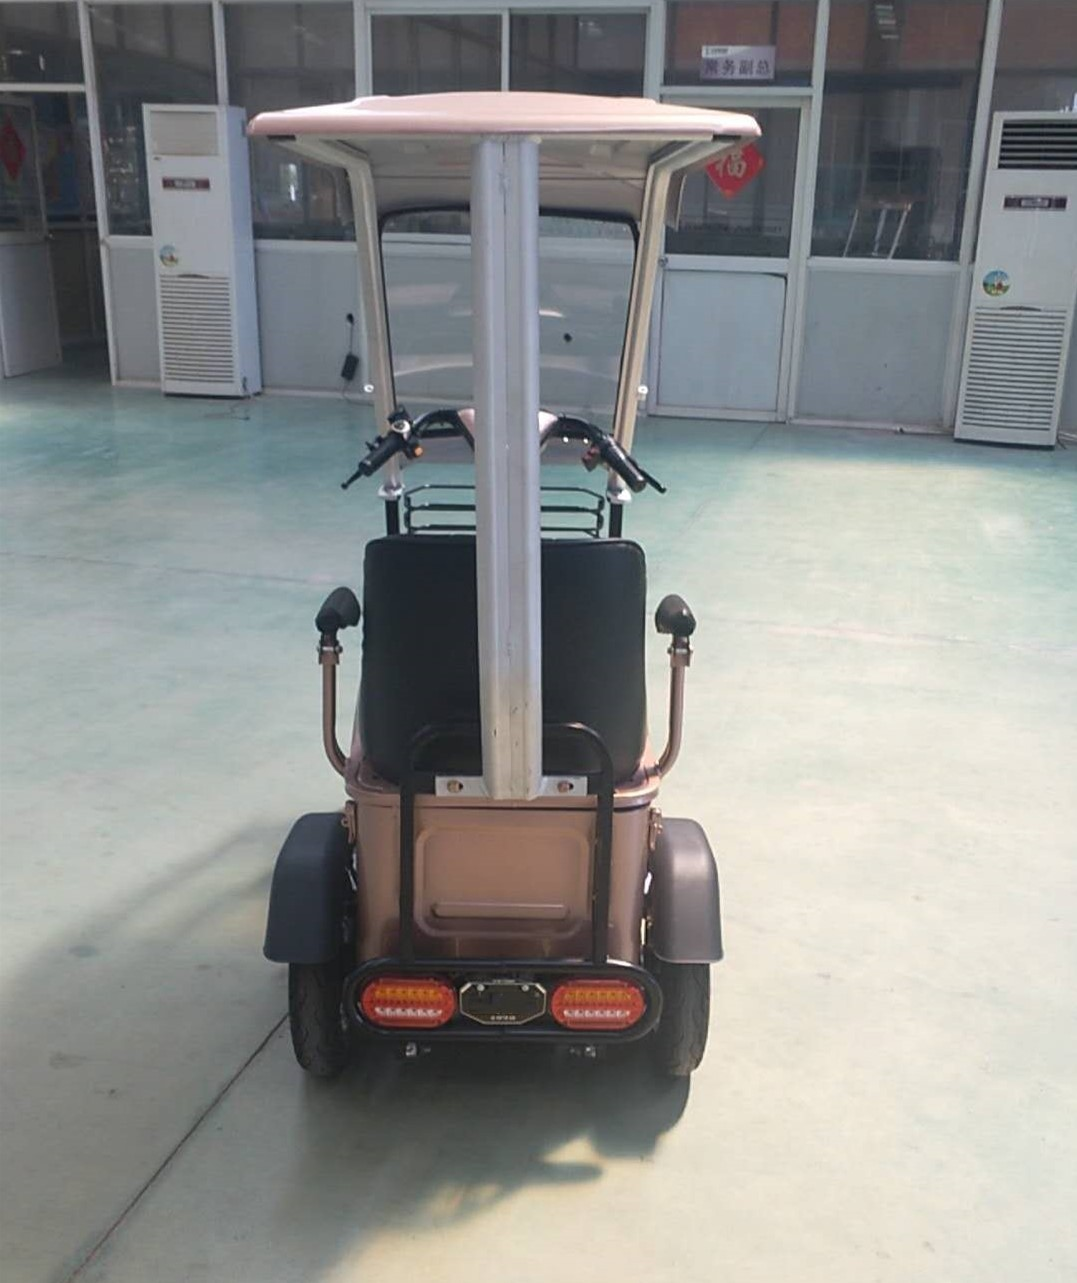 High quality 4 wheel outdoor lithium battery electric mobility scooter Quotes,China 4 wheel outdoor lithium battery electric mobility scooter Factory,4 wheel outdoor lithium battery electric mobility scooter Purchasing